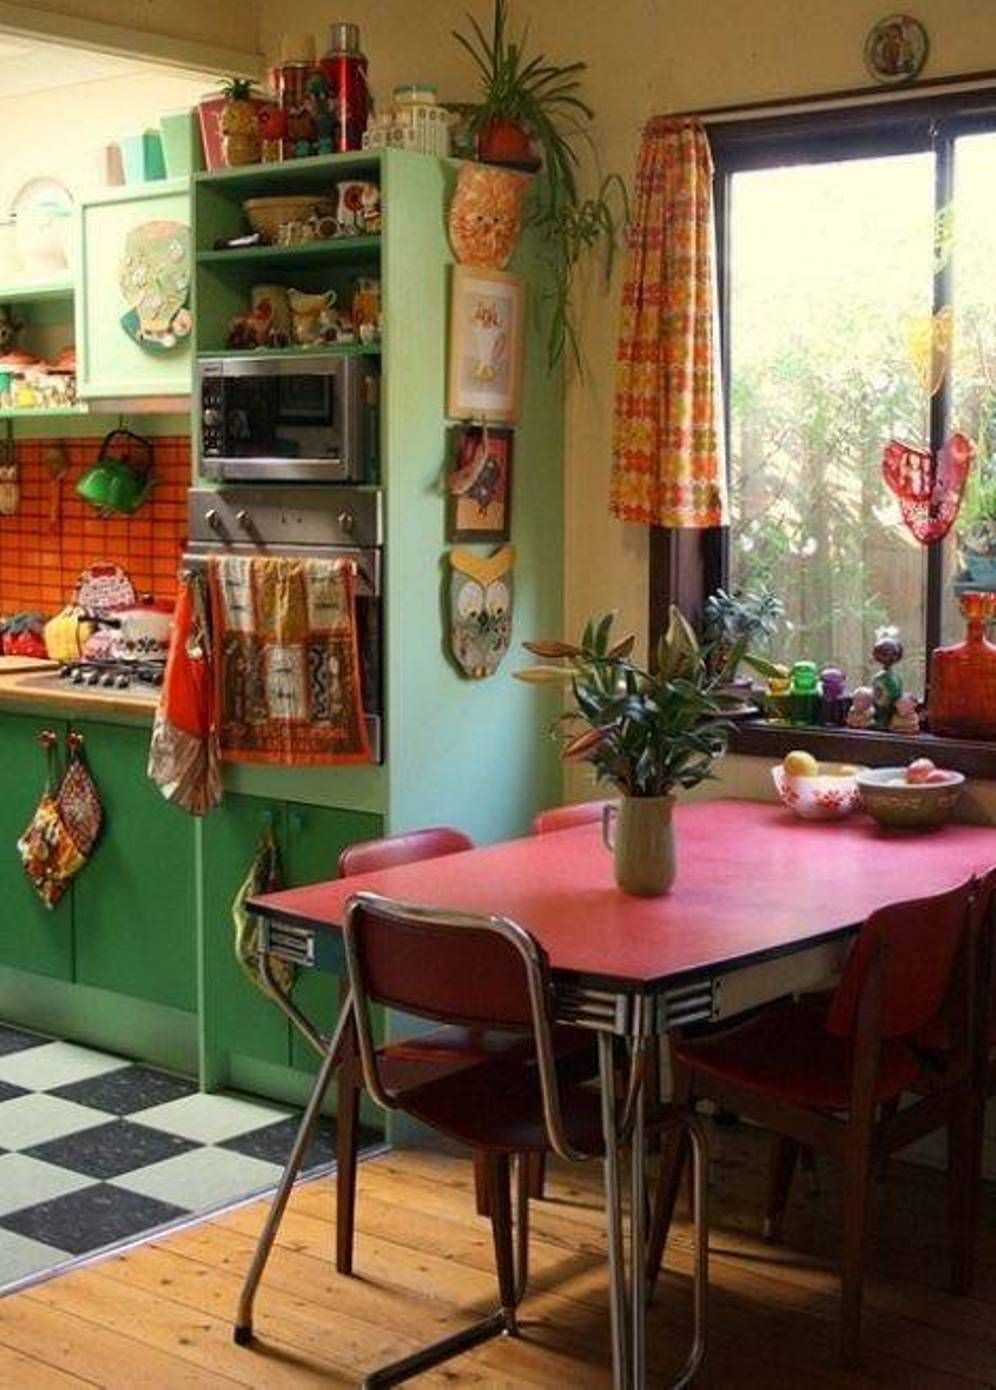 Kitchen Vintage Ideas Decorating Vintage Kitchen Vintage Kitchen Idea Bohemian Kitchen Decor Retro Home Decor Bohemian Style Kitchen